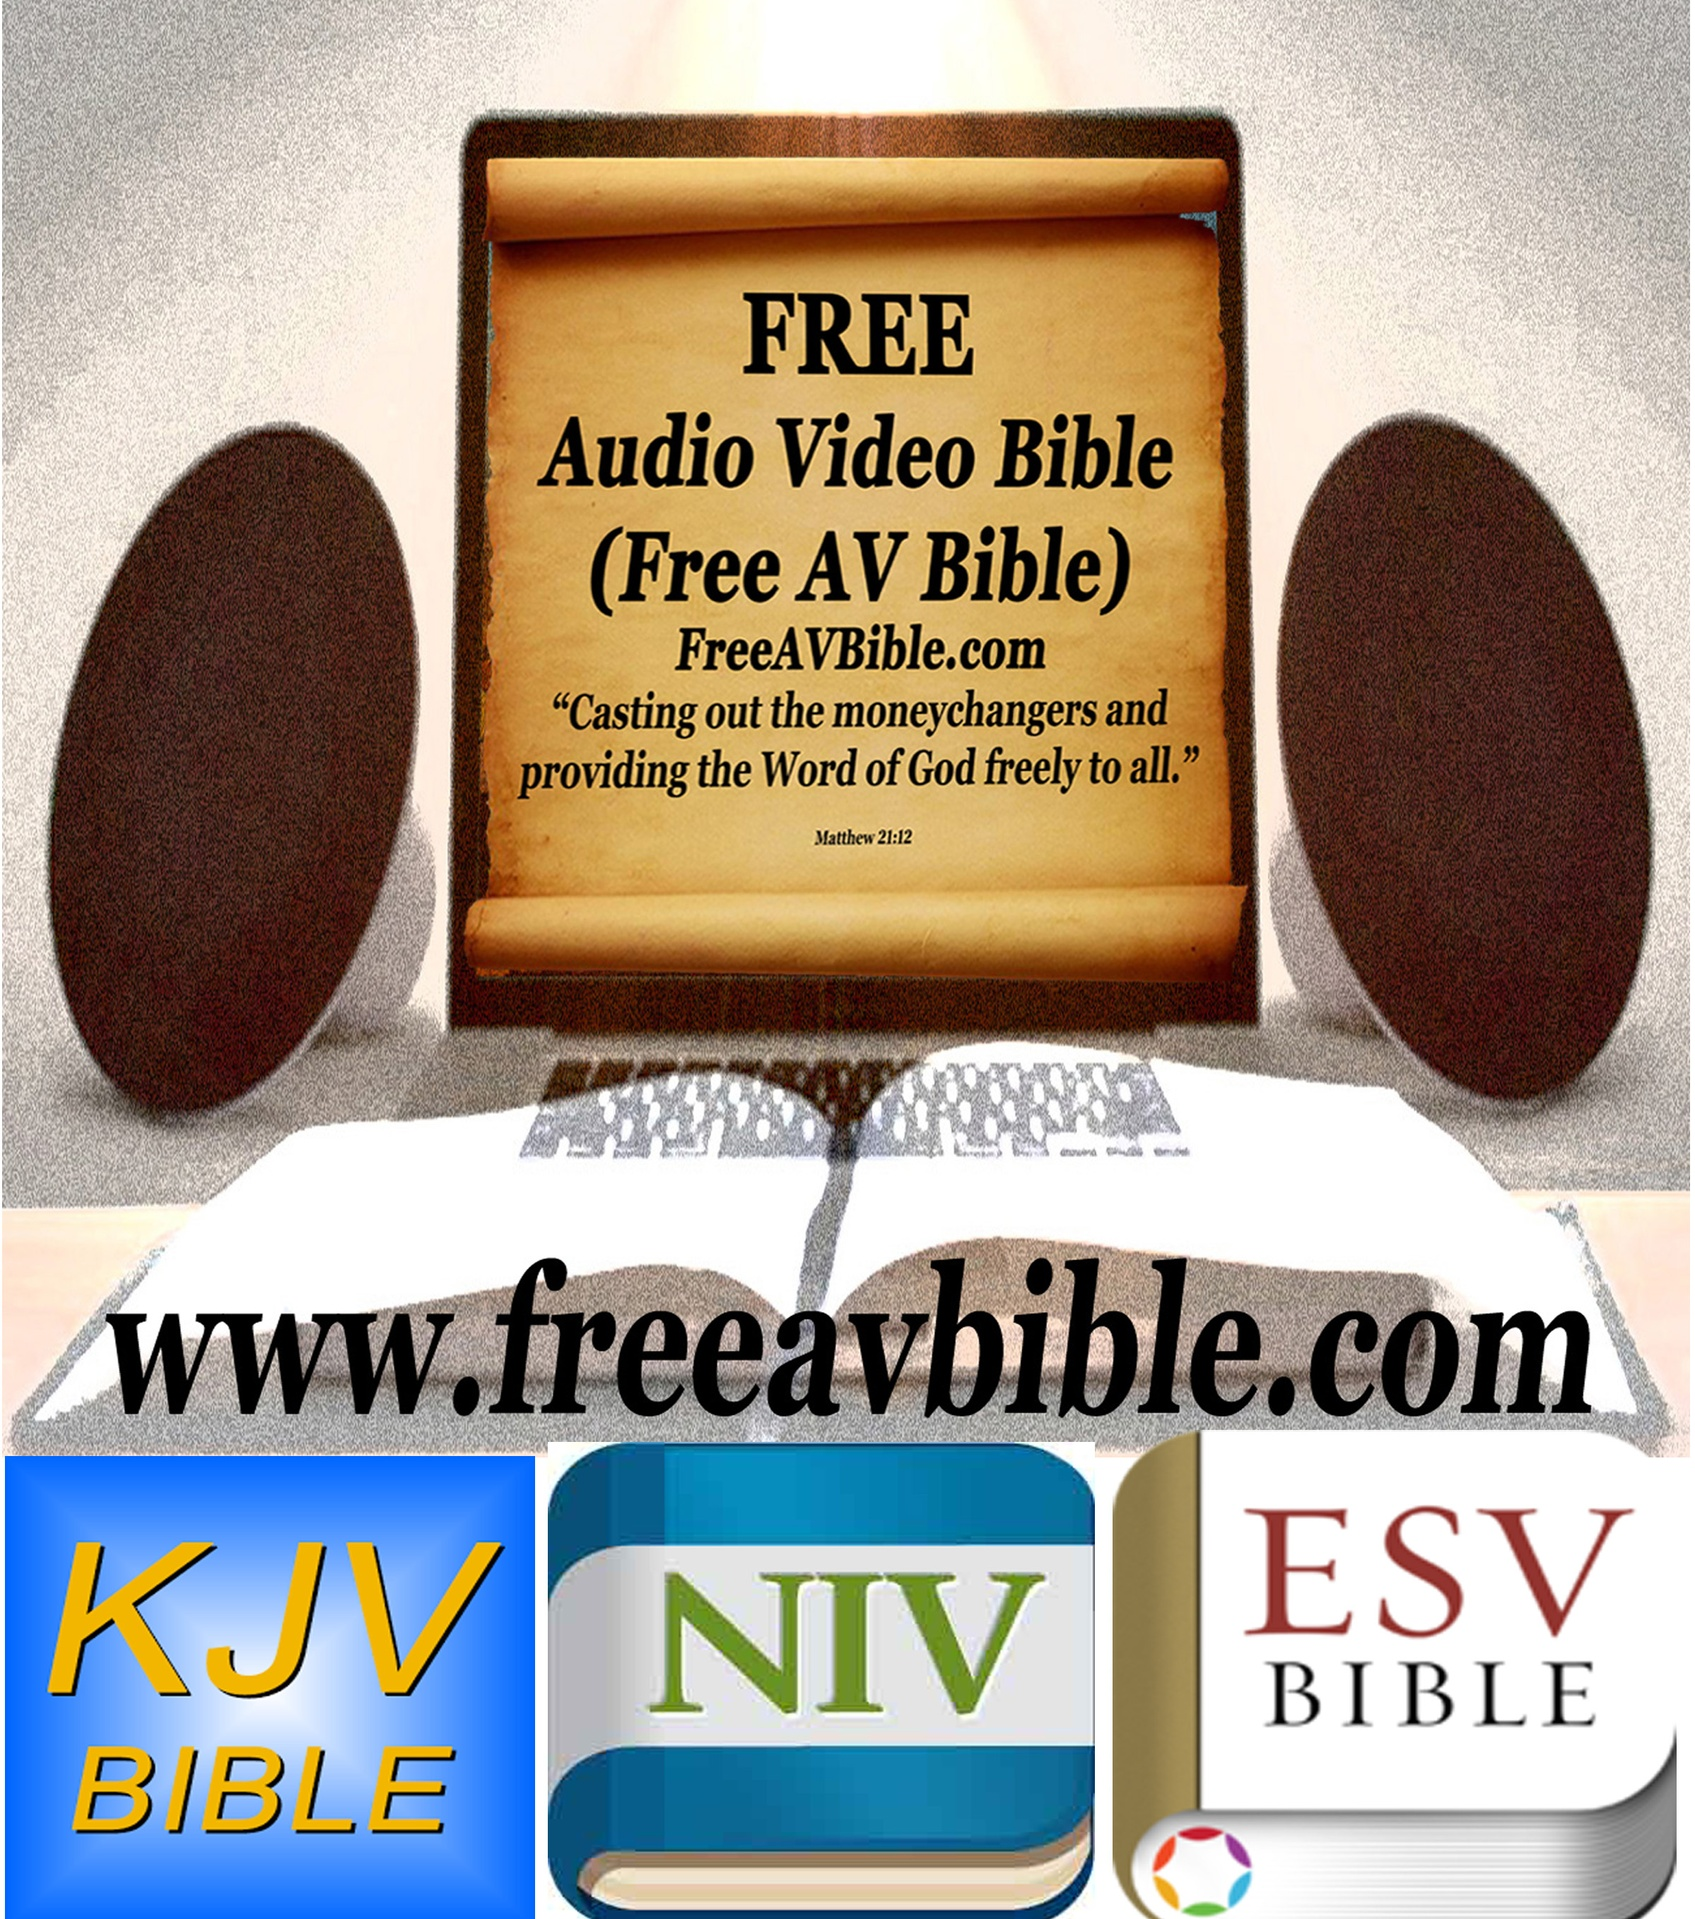 Free Audio Video Bible - Welcome